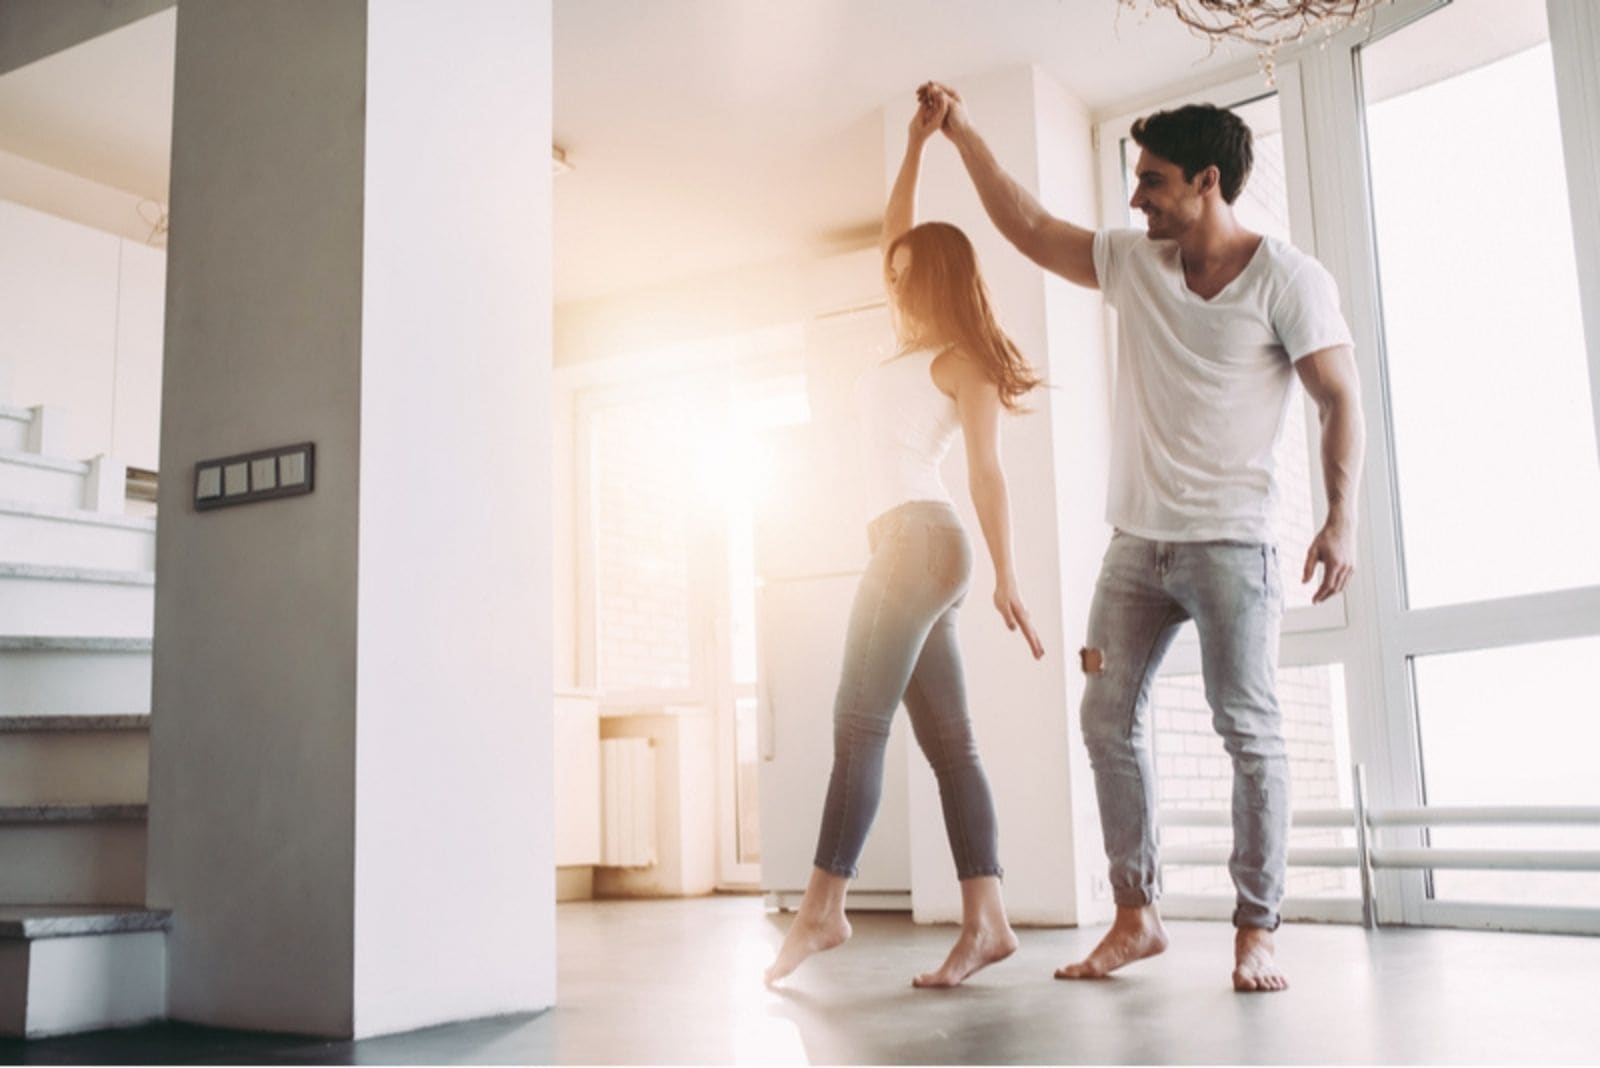 couple dancing around inside the house barefooted